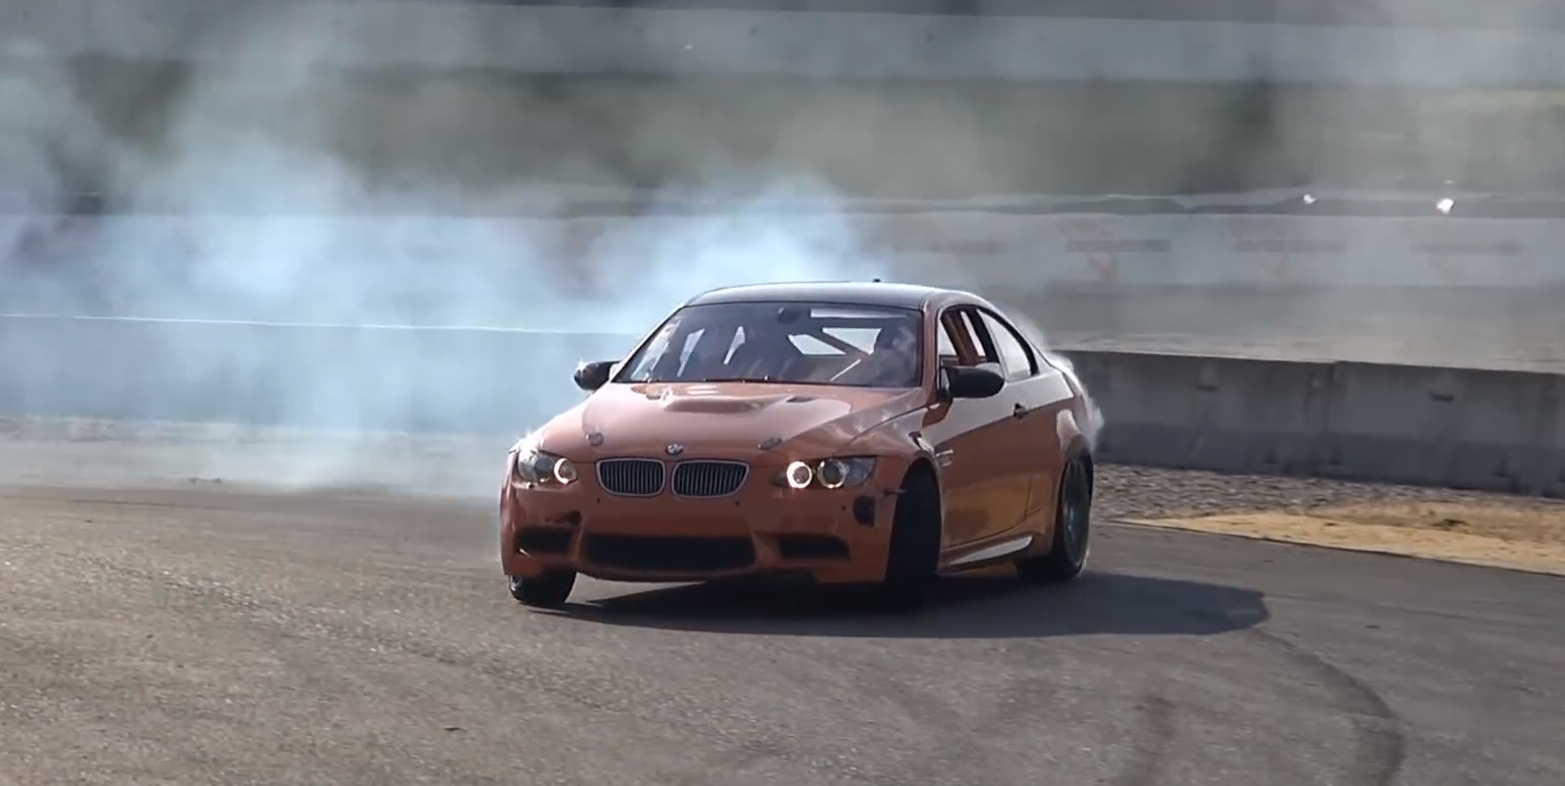 Heavily Modified Bmw E92 M3 Burns Some Rubber To Remind Us Of The S65 V8 Autoevolution